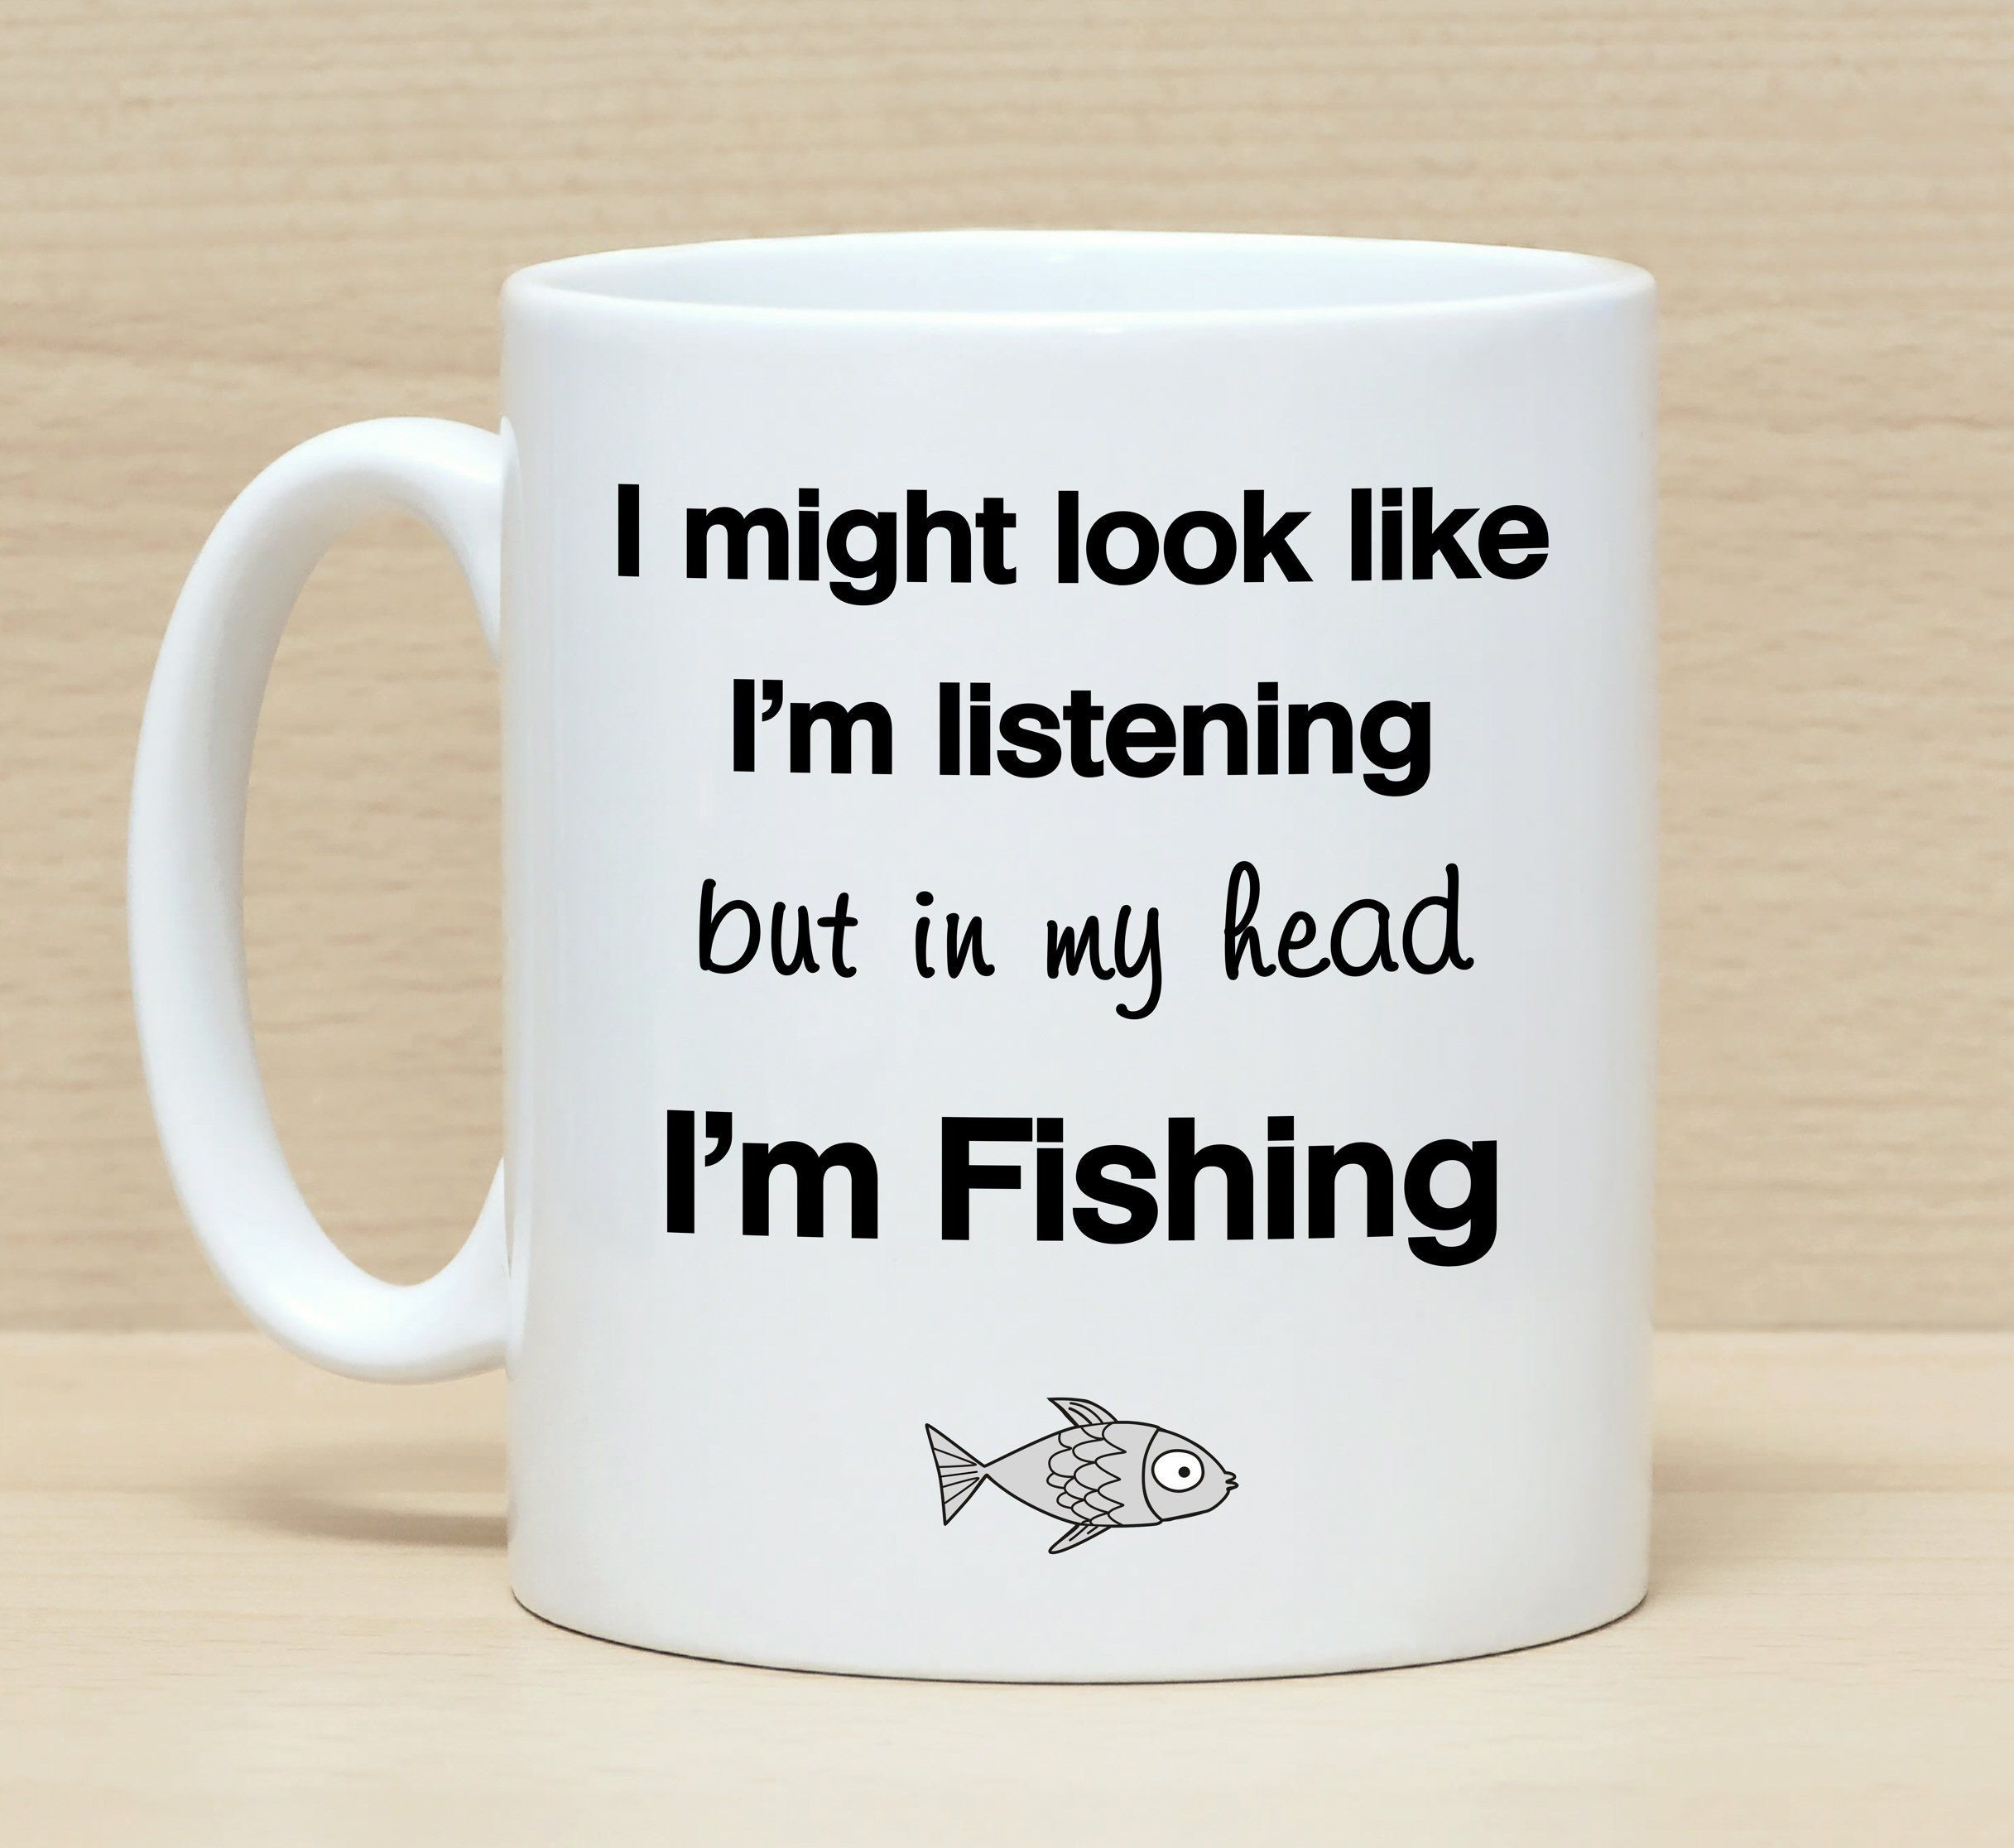 Fishing Mug Fishing Gift Funny Coffee Mug Funny Birthday Mug Mug For Fishermen Mug With Saying Mug For Men M Mugs For Men Coffee Humor Funny Coffee Mugs